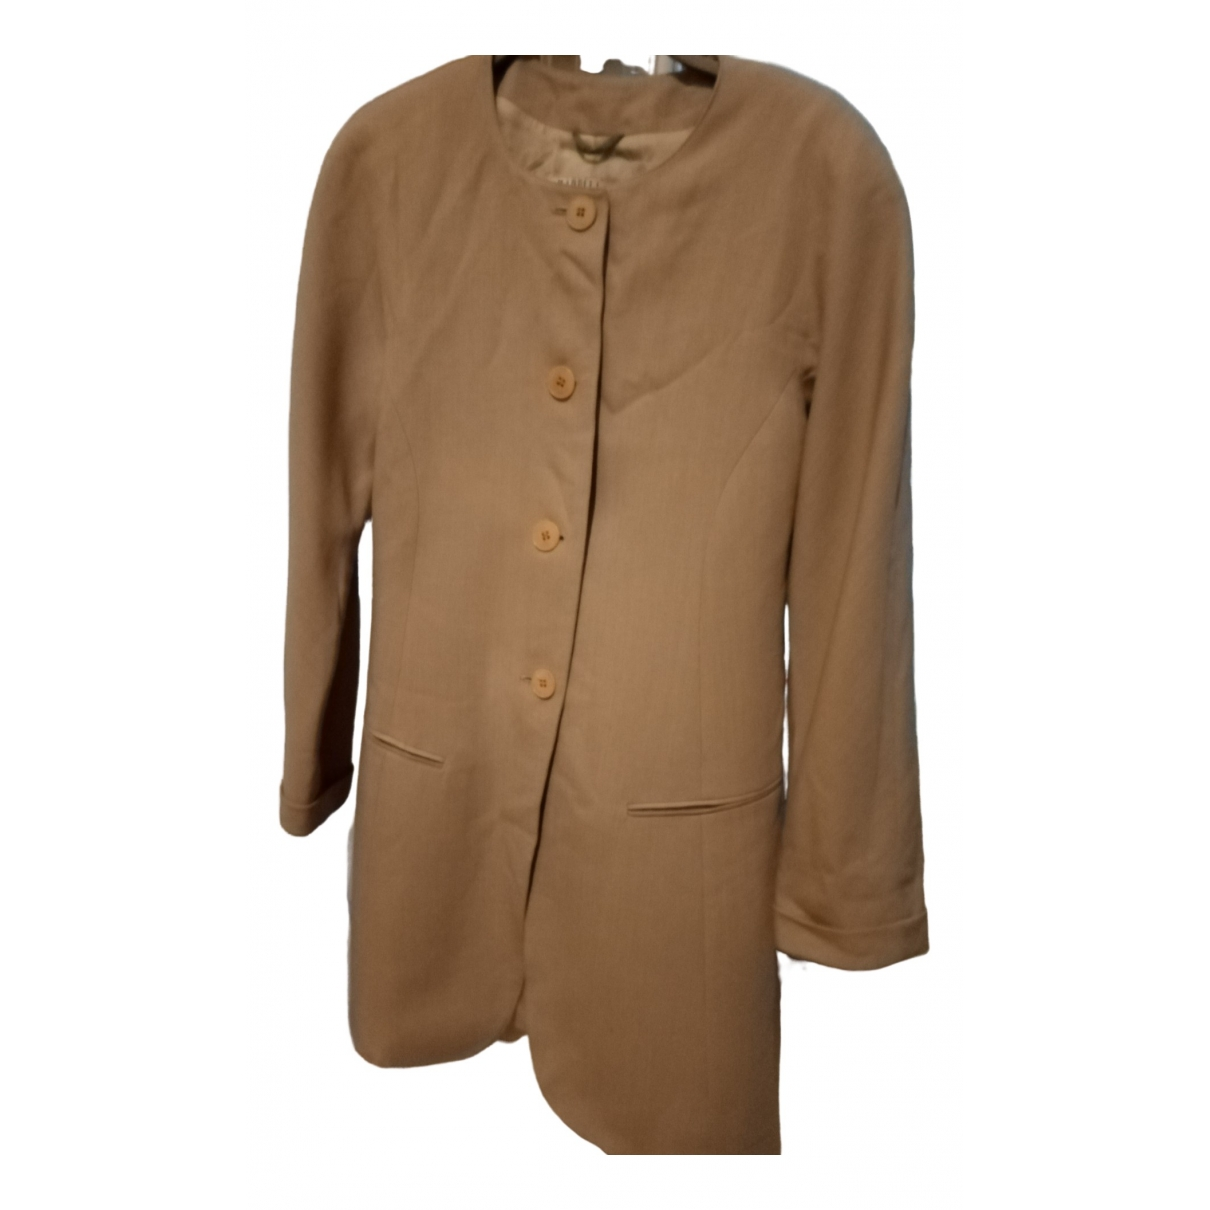 Marella \N Beige jacket for Women 42 IT